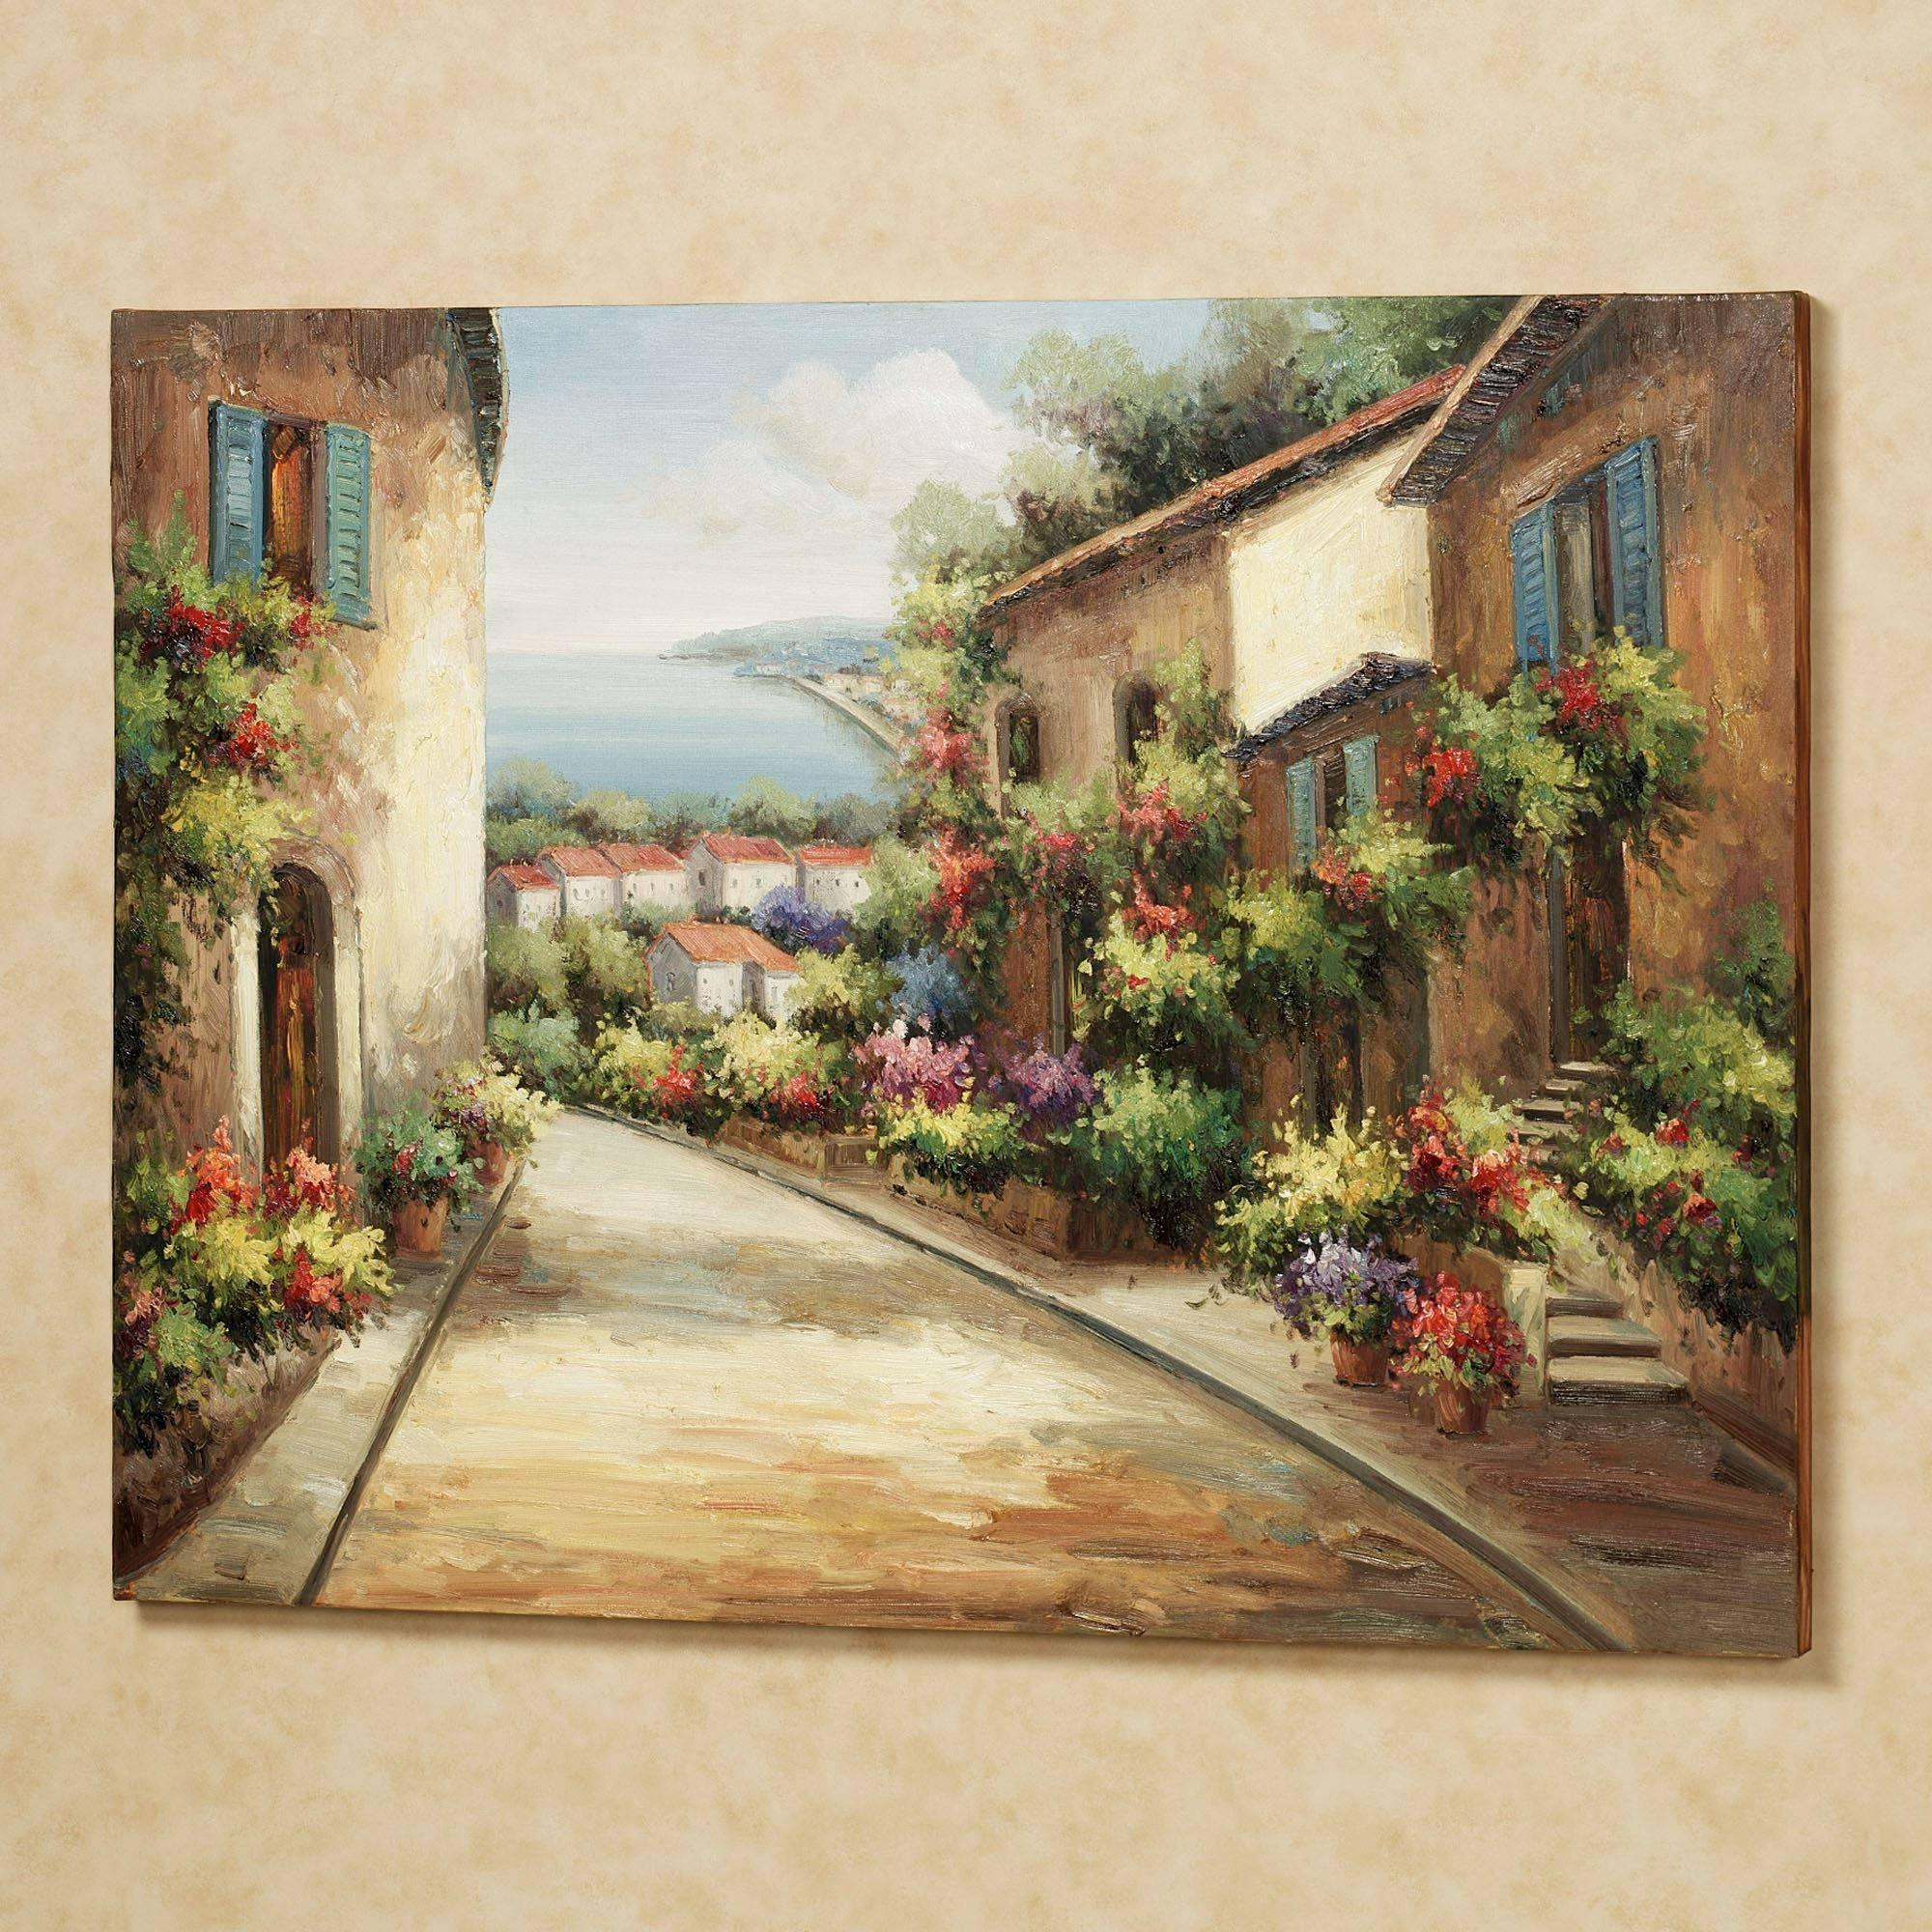 Streets Of Tuscany Canvas Wall Art In Most Up To Date Tuscan Wall Art Decor (View 7 of 20)